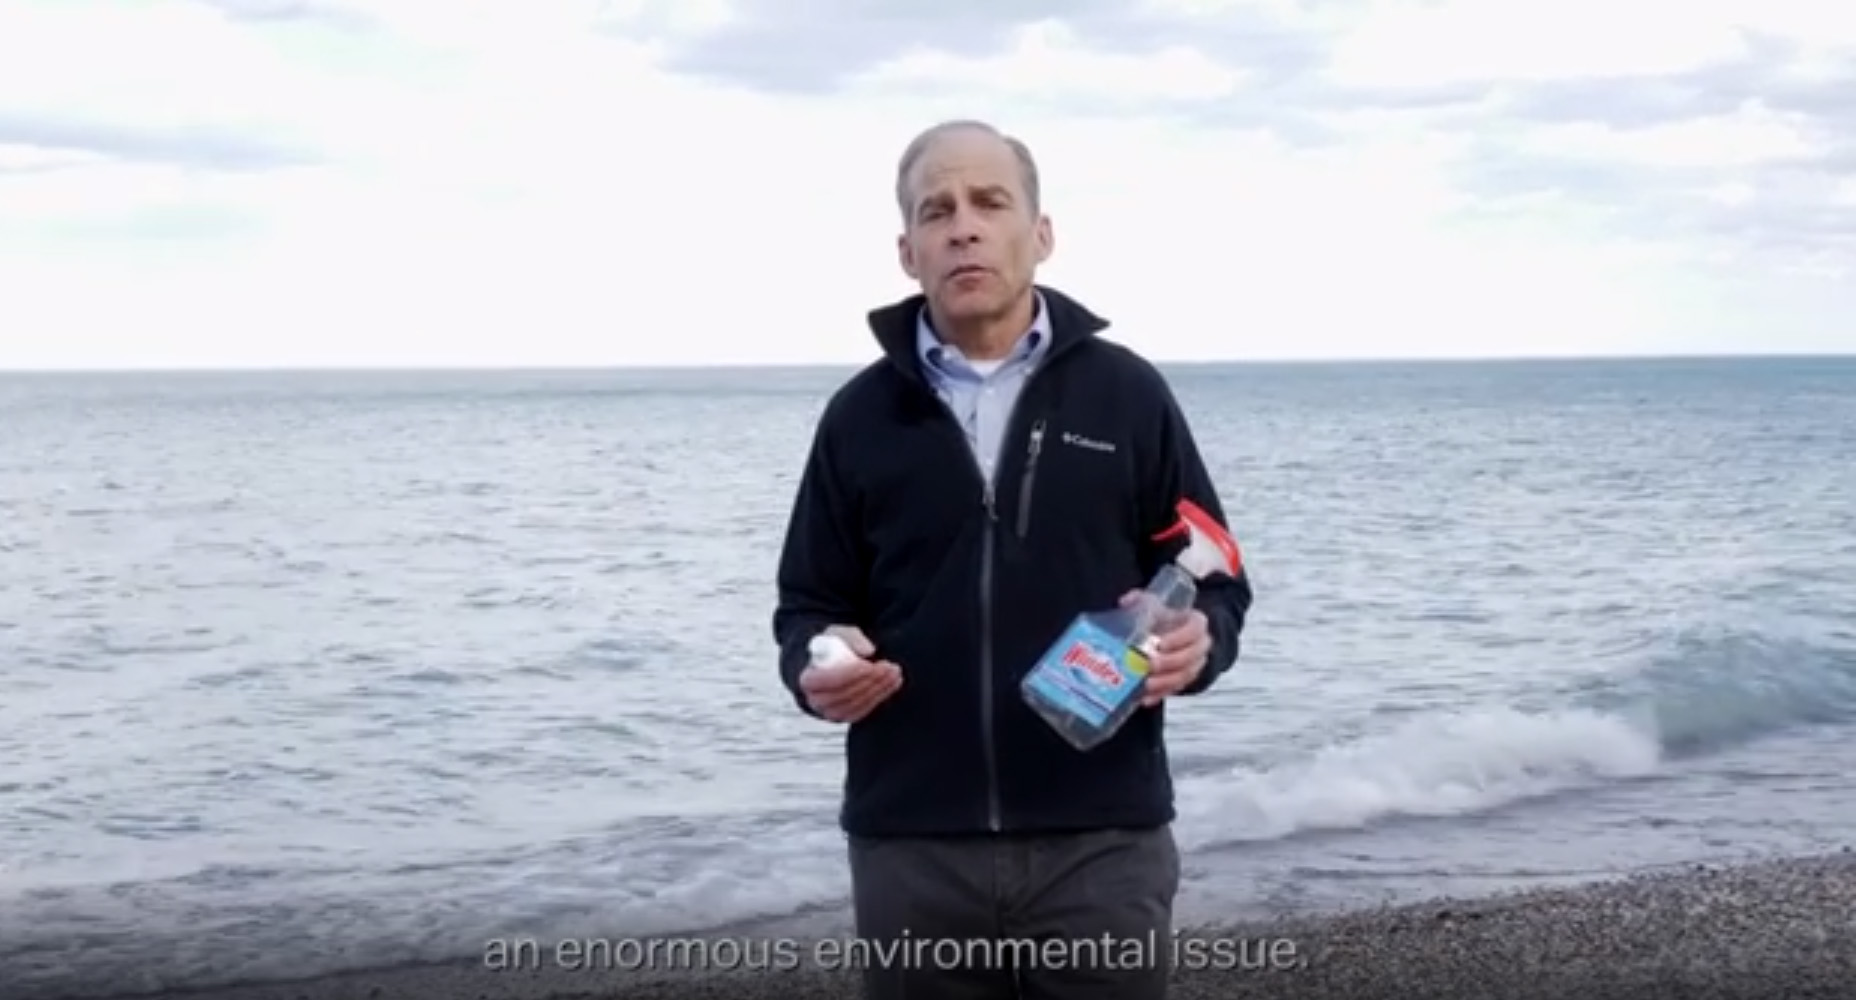 SC Johnson Chairman & CEO Fisk Johnson shares how using concentrate bottles can help reduce plastic waste.